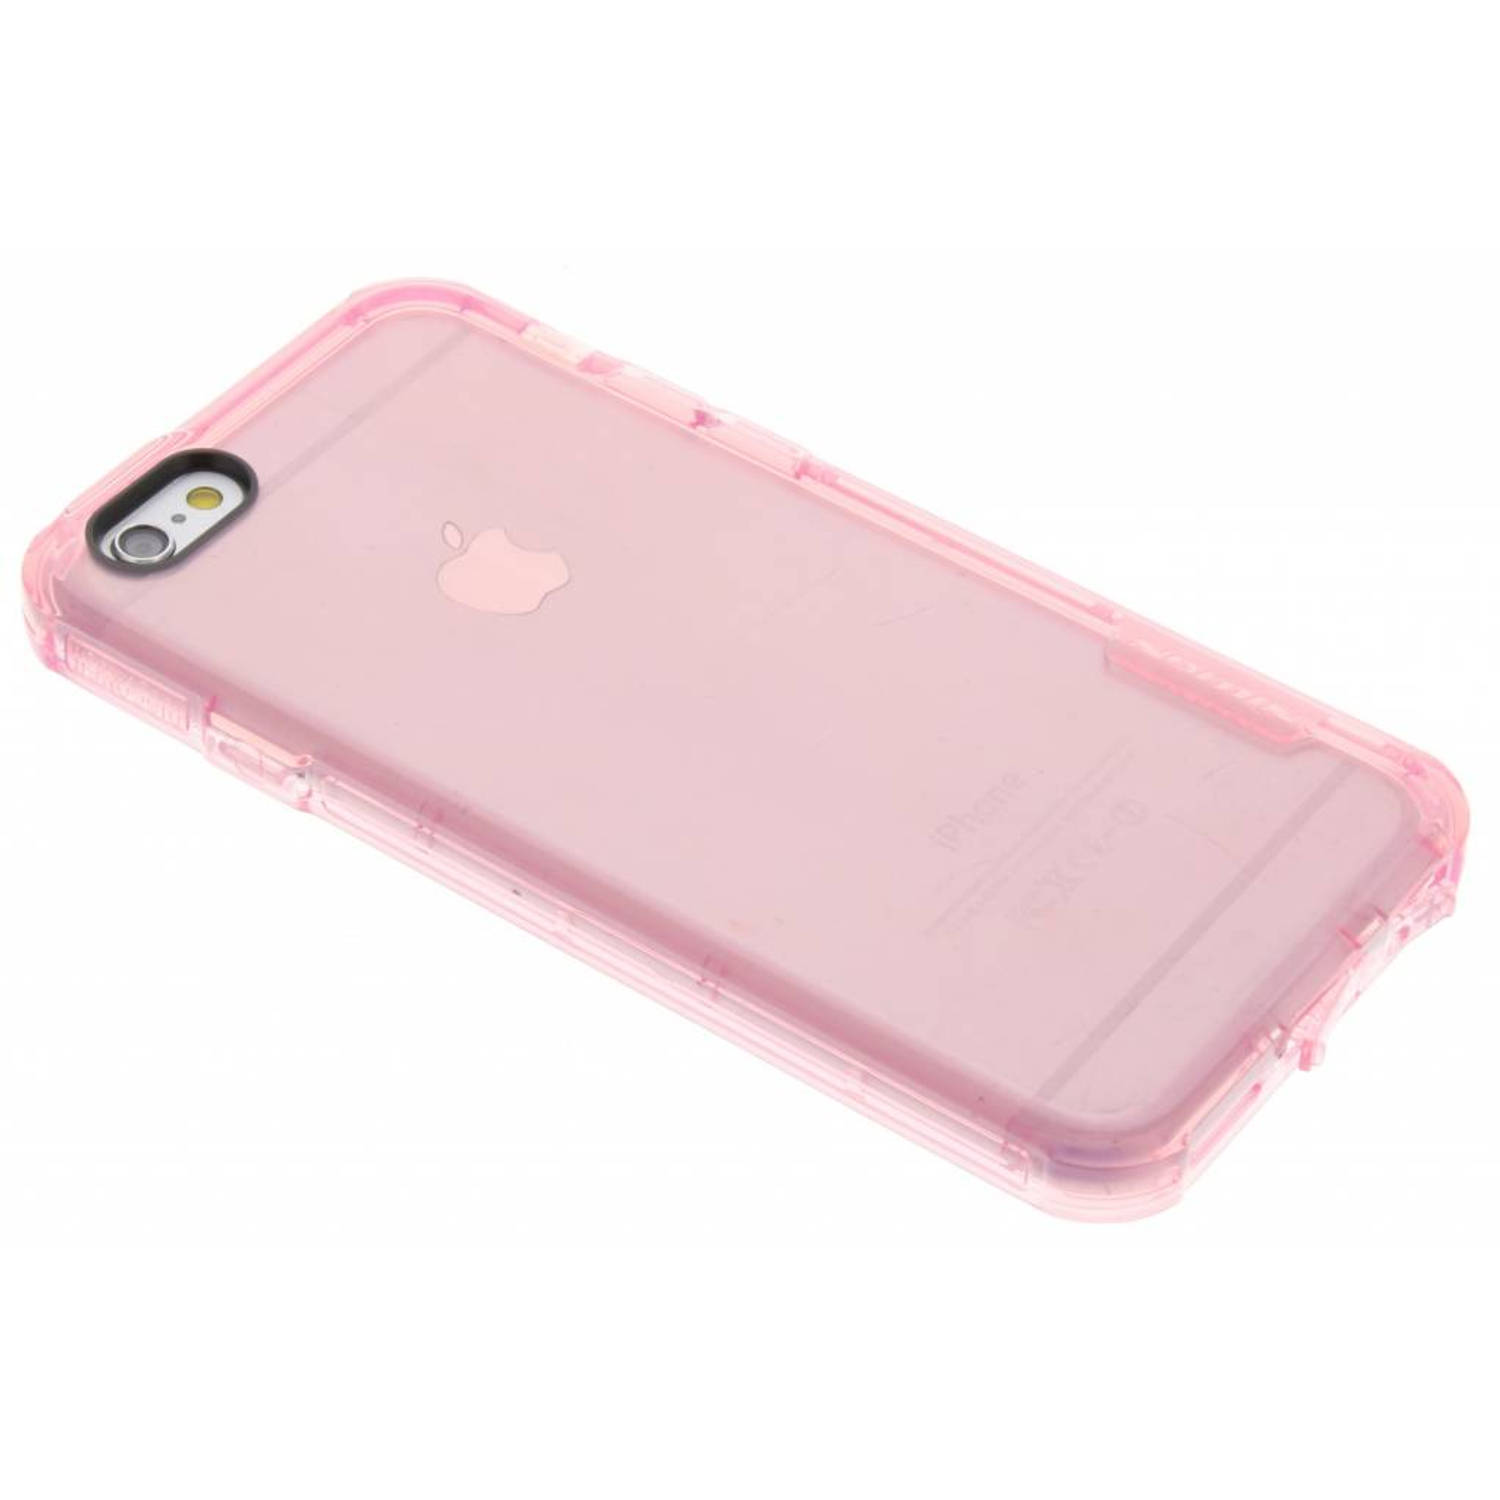 Crashproof TPU Case voor de iPhone 6 / 6s - Roze